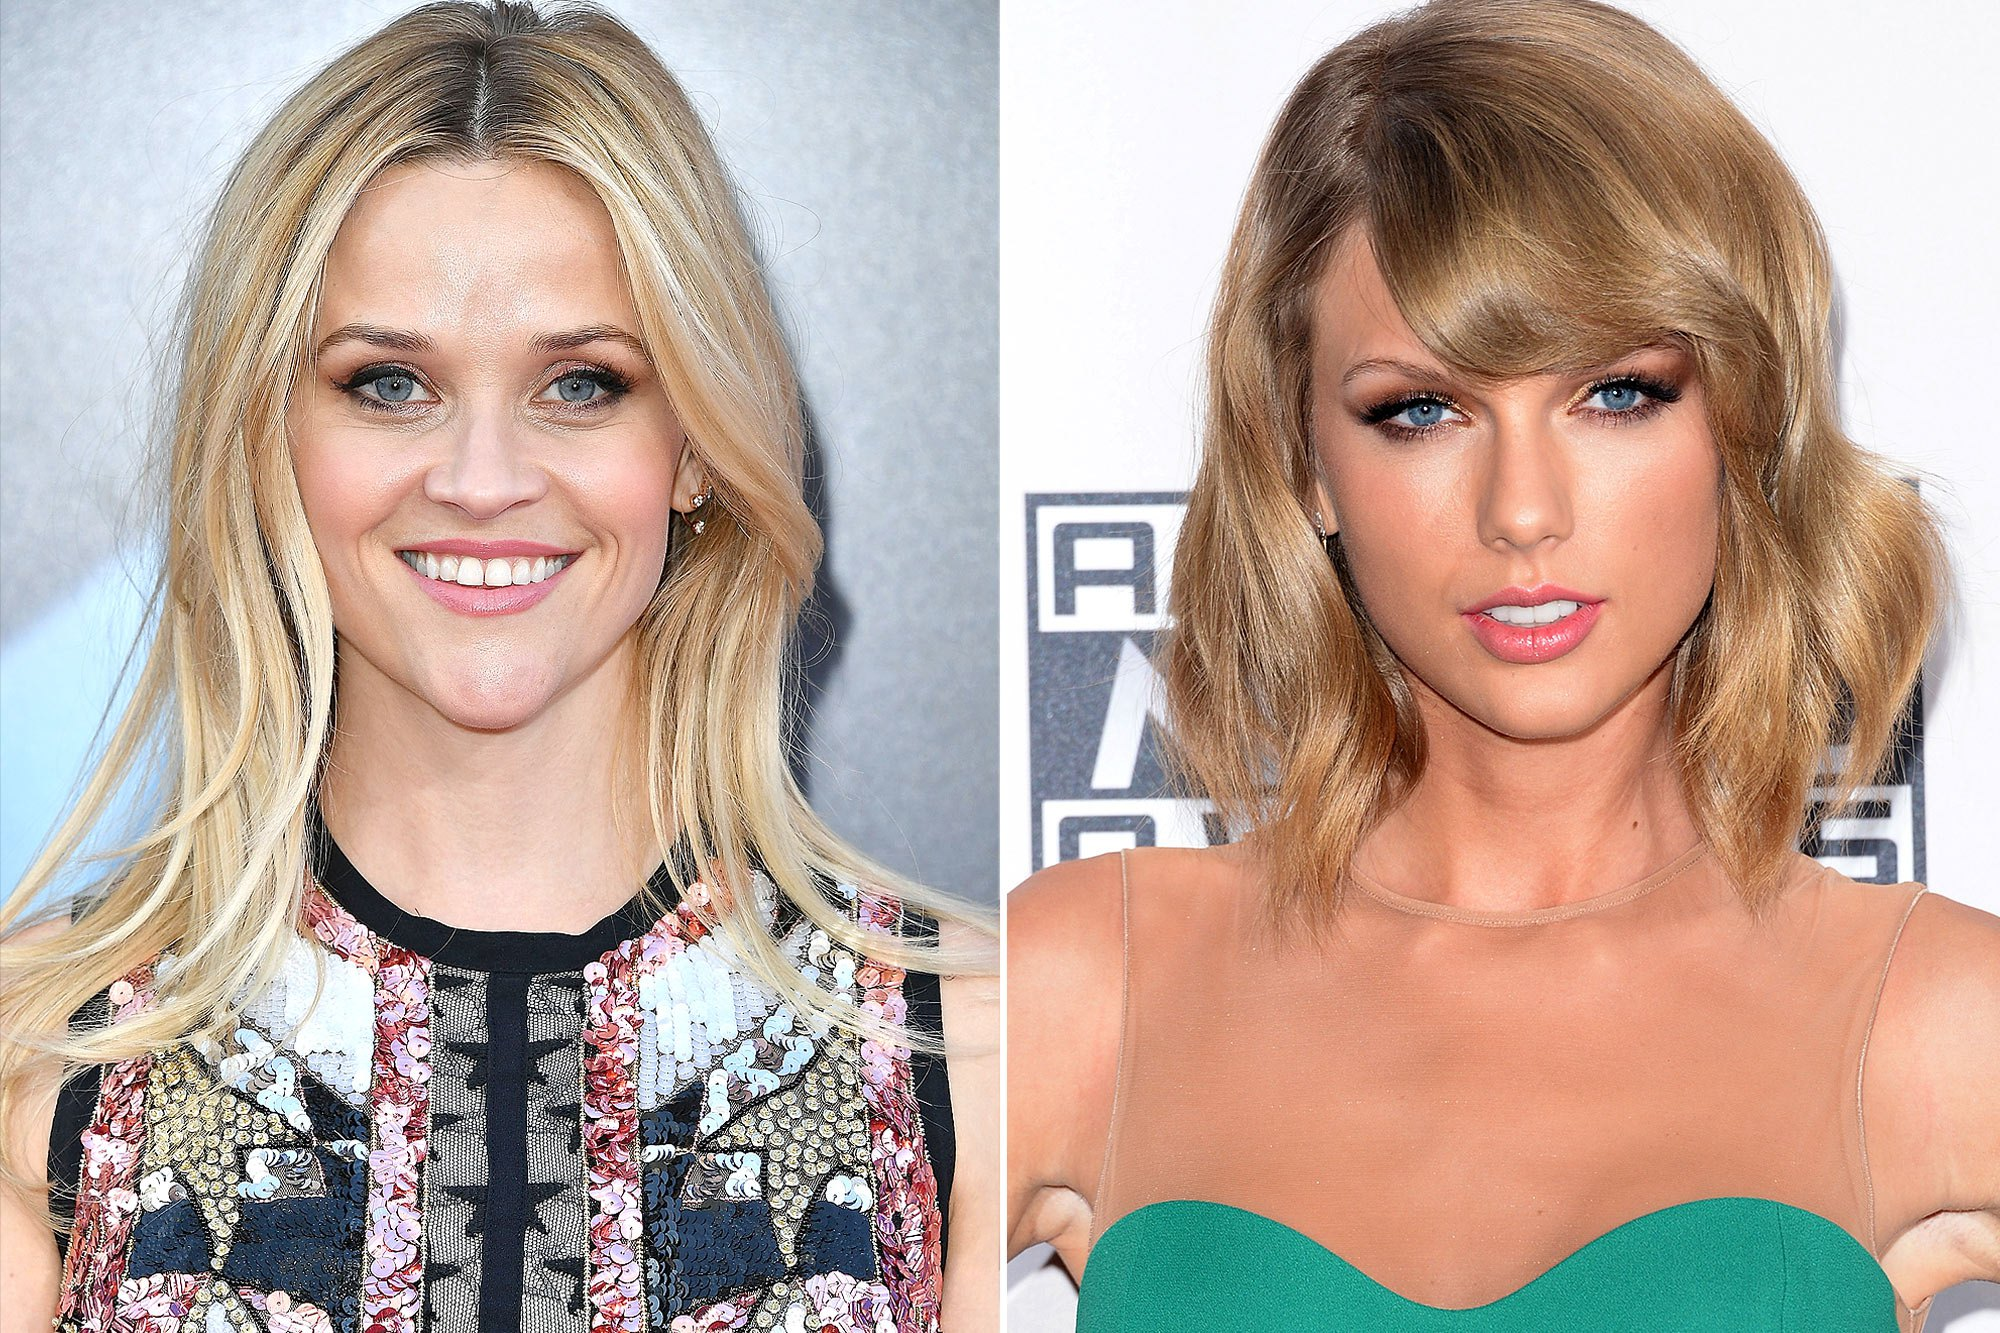 Reese Witherspoon and Taylor Swift